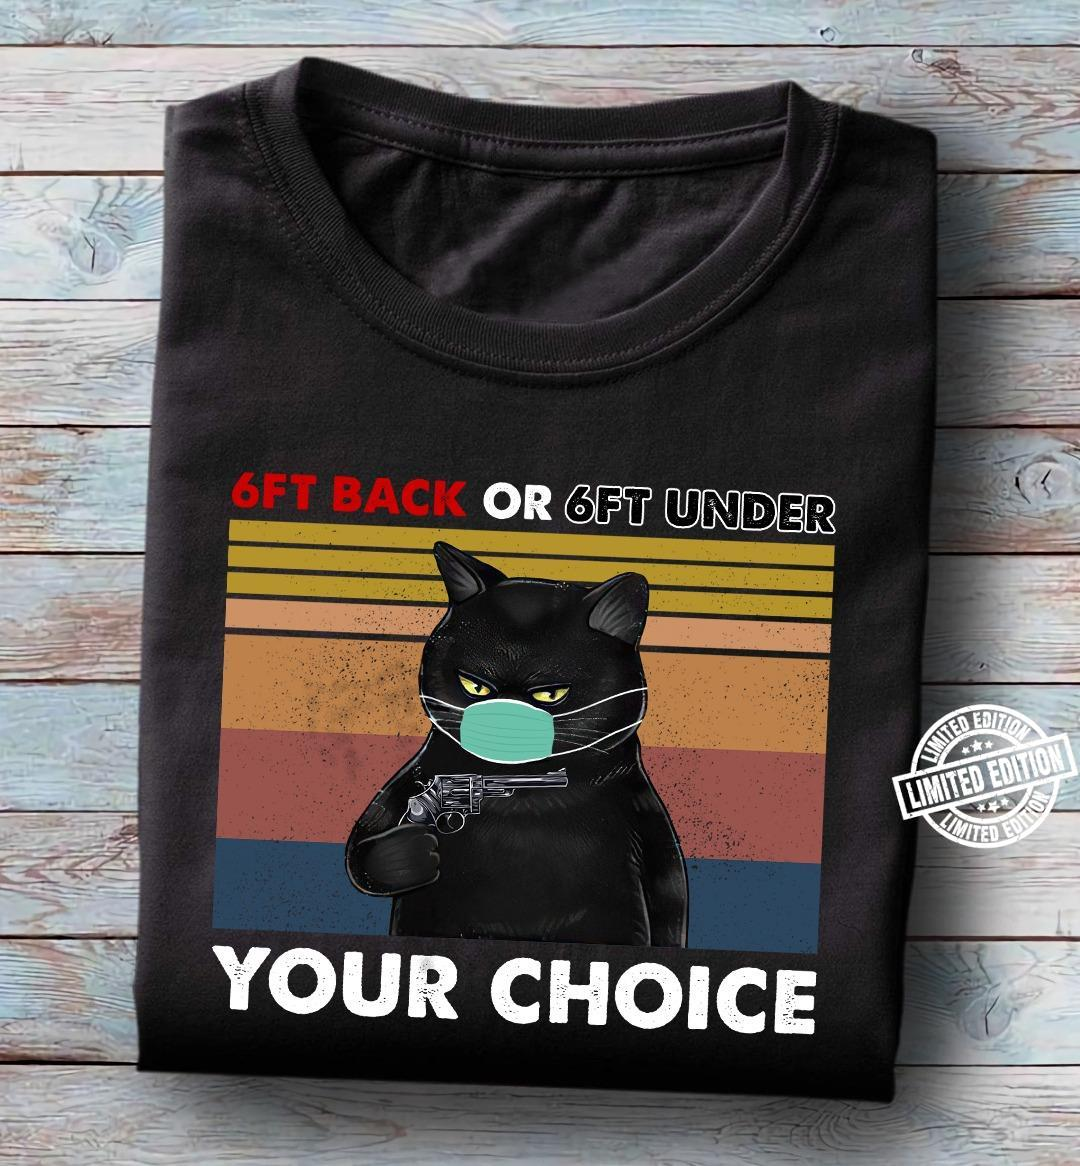 Black cat 6ft back or 6ft under your choice shirt